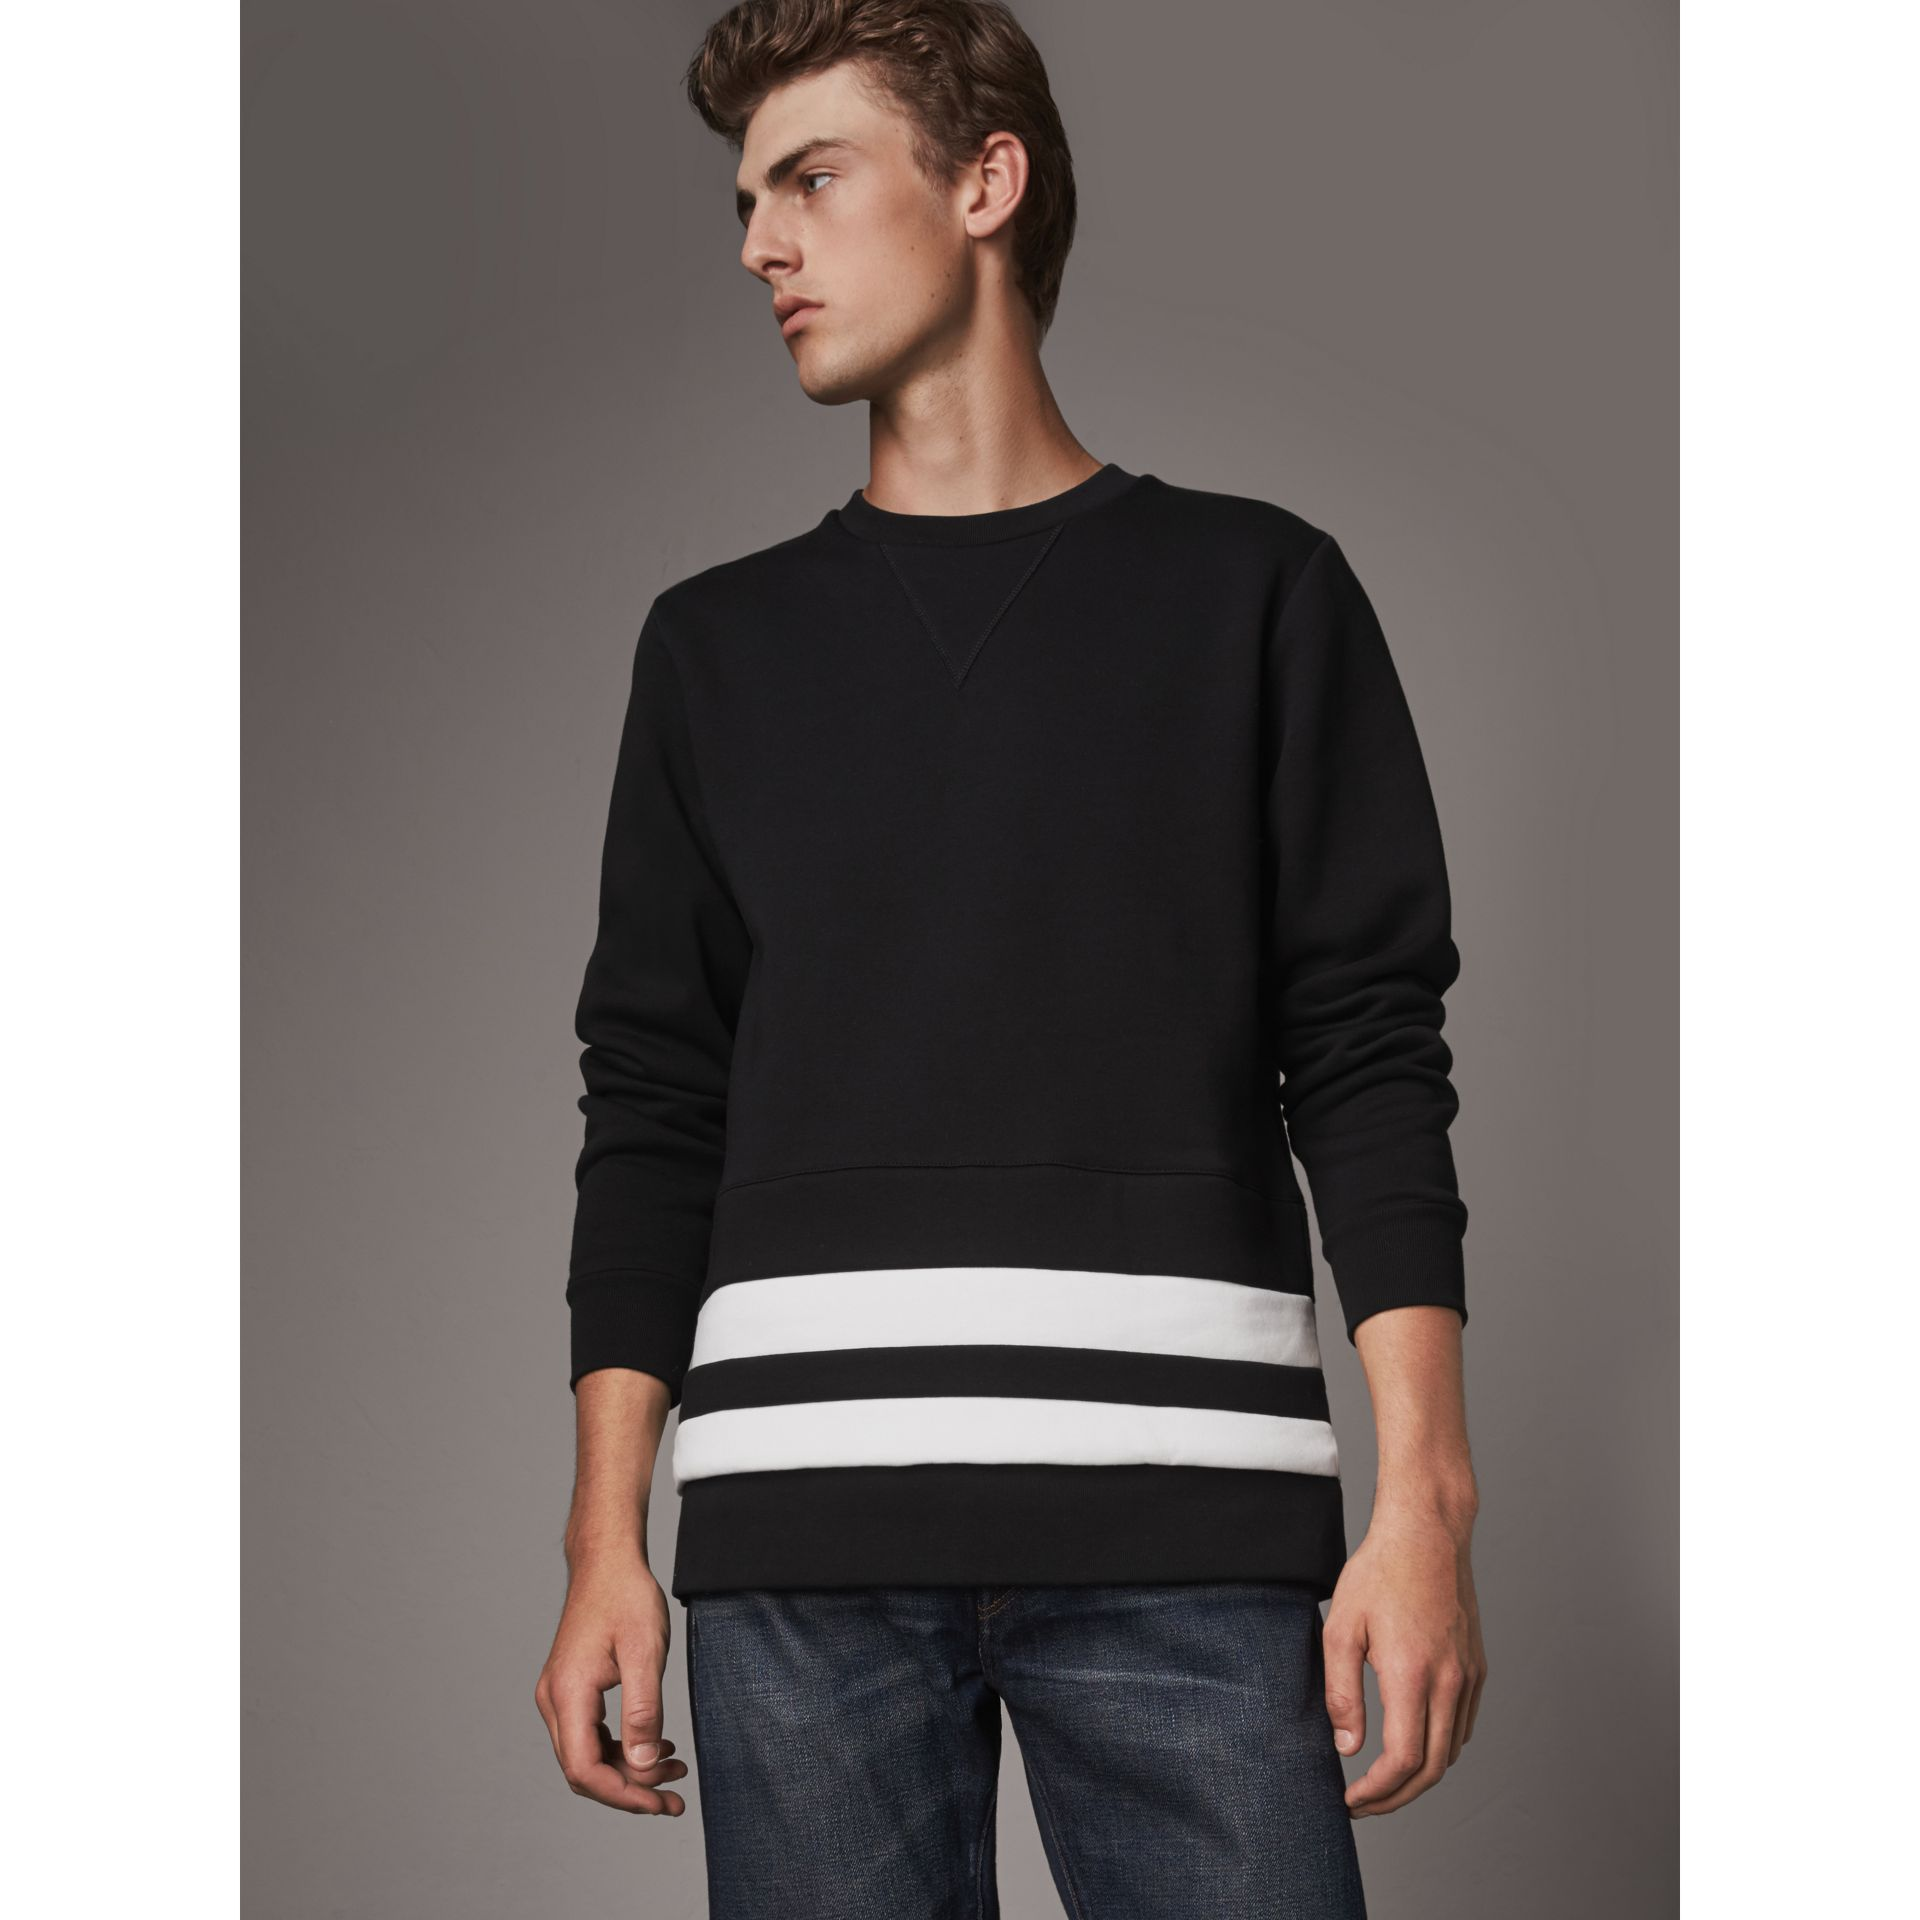 Sweat-shirt en coton mélangé avec base à rayures (Noir) - Homme | Burberry - photo de la galerie 1